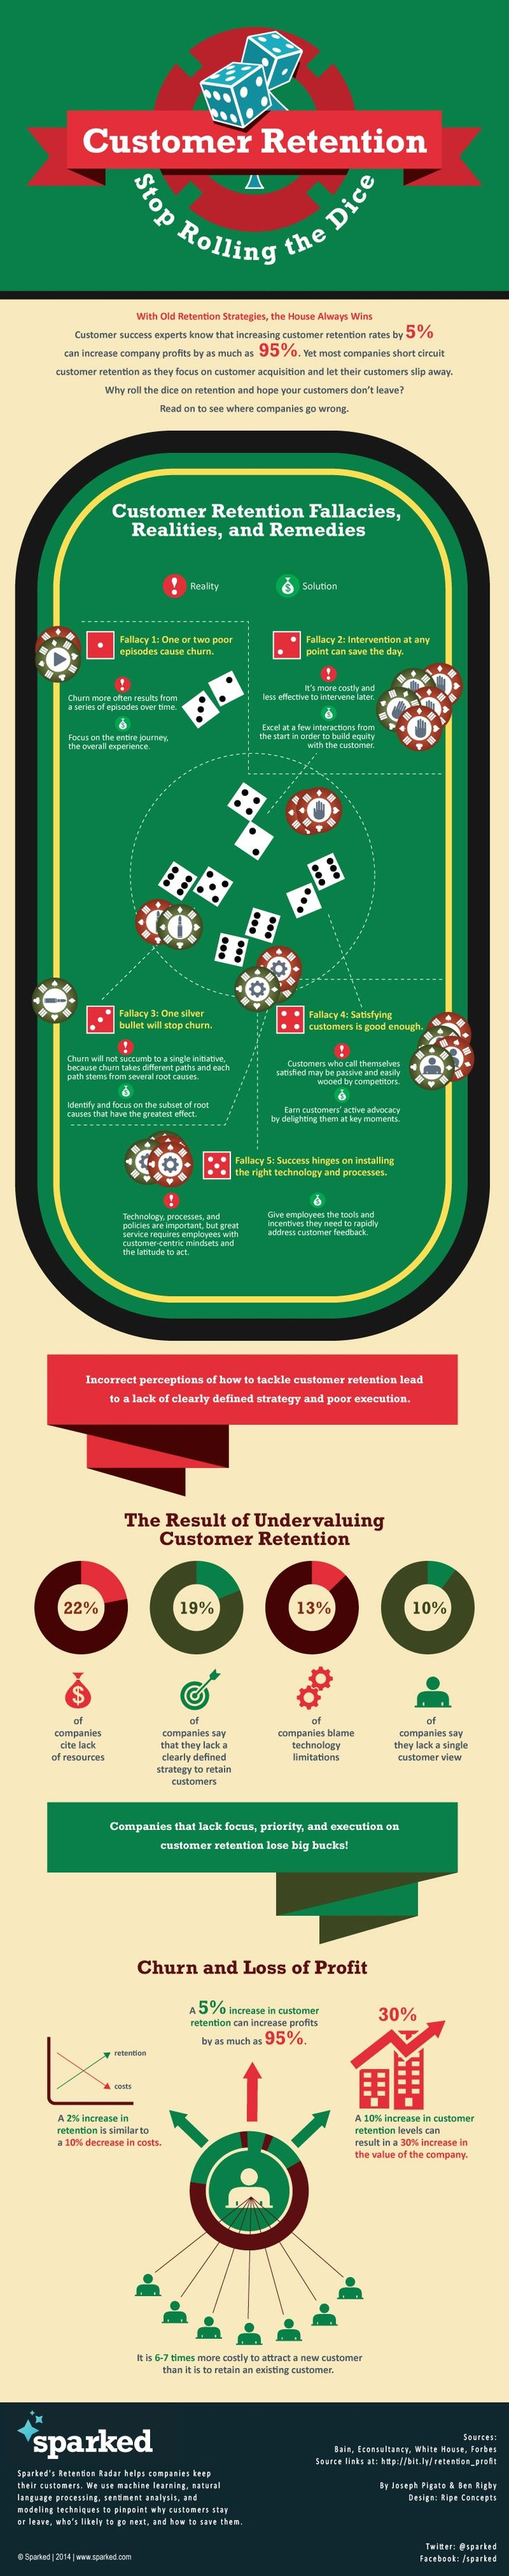 Customer Relationships - Stop Gambling With Customer Retention [Infographic] : MarketingProfs Article